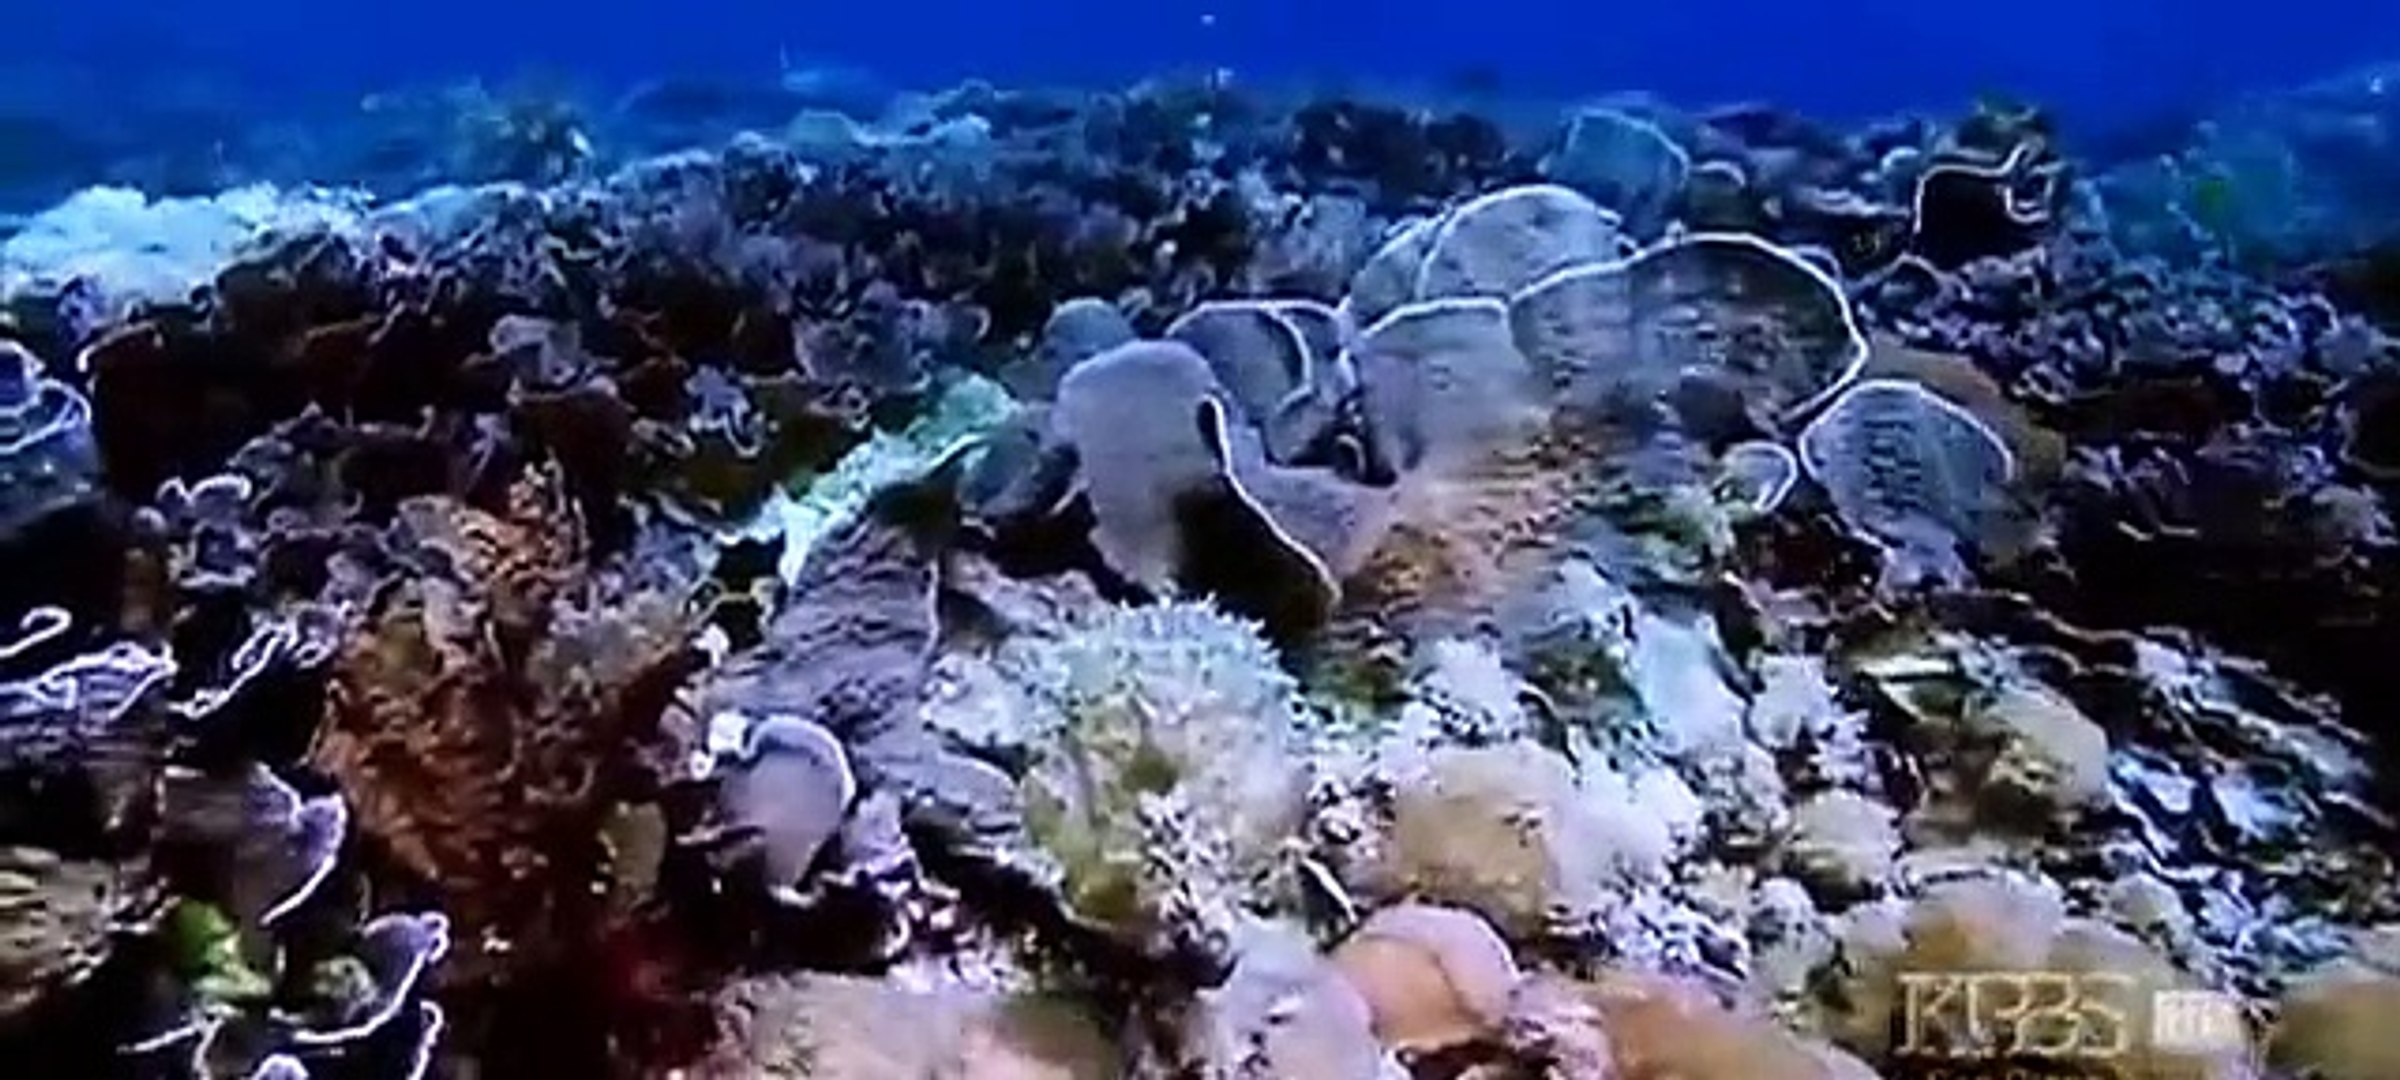 Discovery channel - Discovery Animals - Discovery Kings of Camouflage Underwater